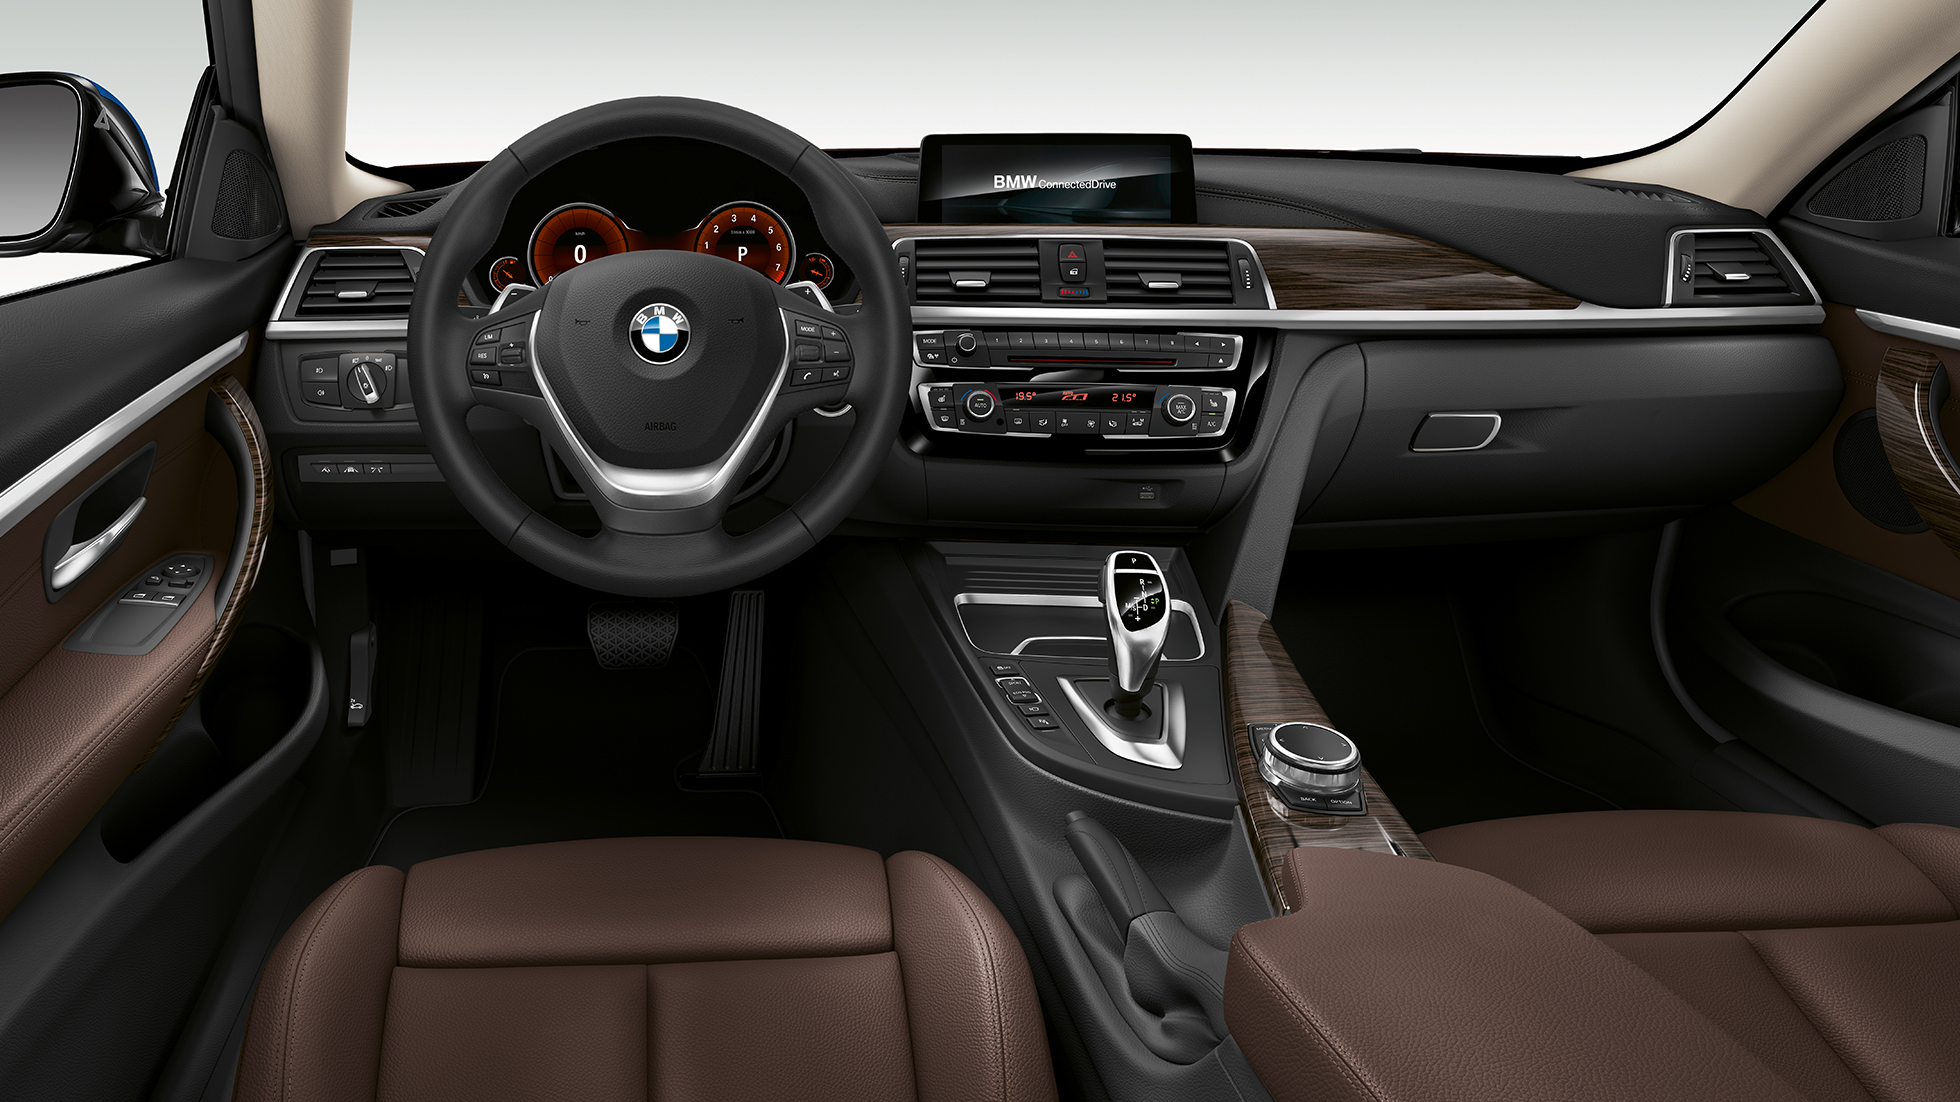 BMW 4 Series Coupé, Model Luxury Line cockpit